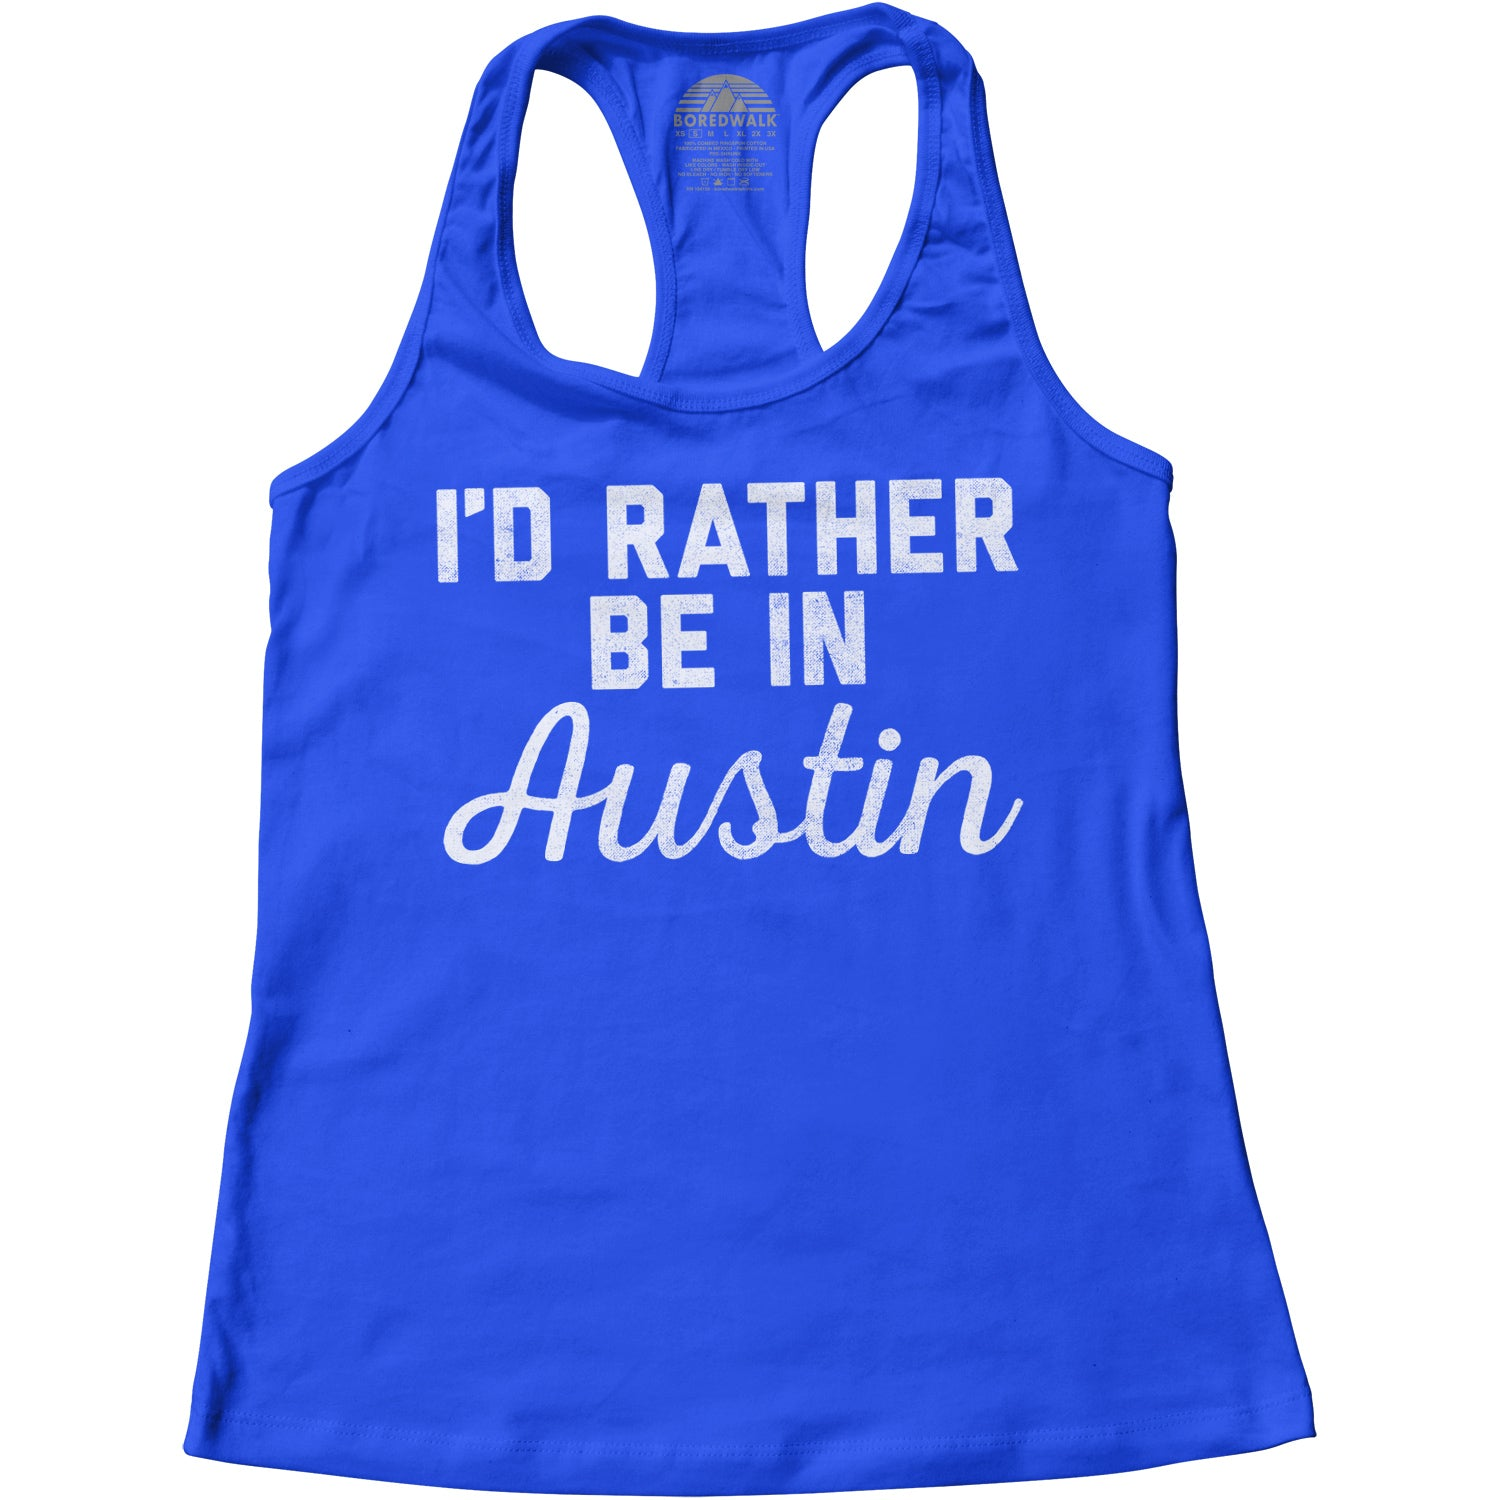 Women's I'd Rather Be in Austin Racerback Tank Top